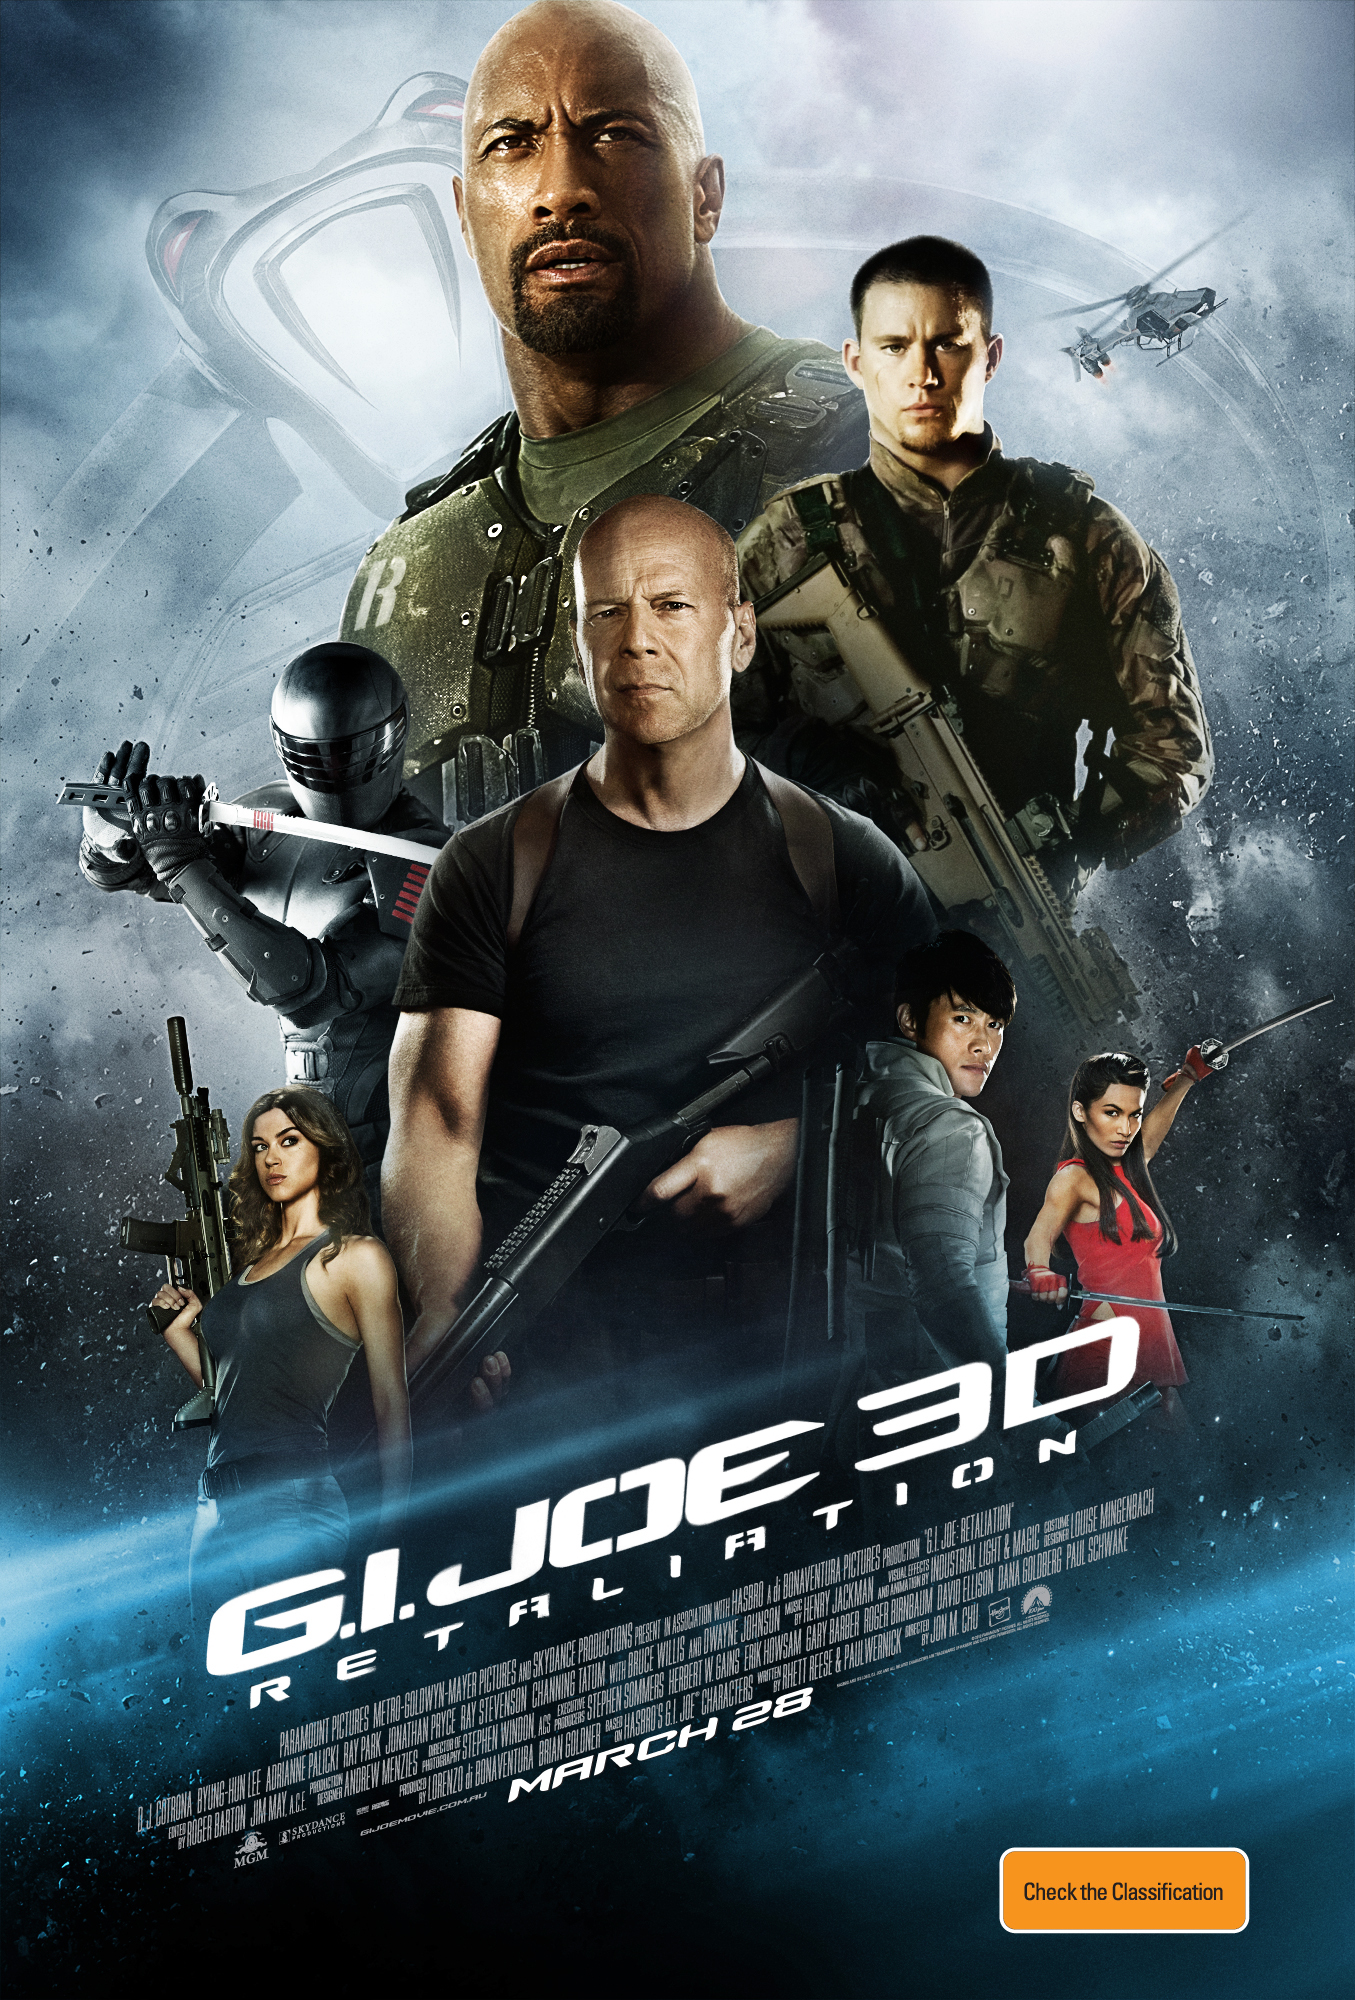 G.I. Joe: Retaliation - Movie Poster #14 (Original)